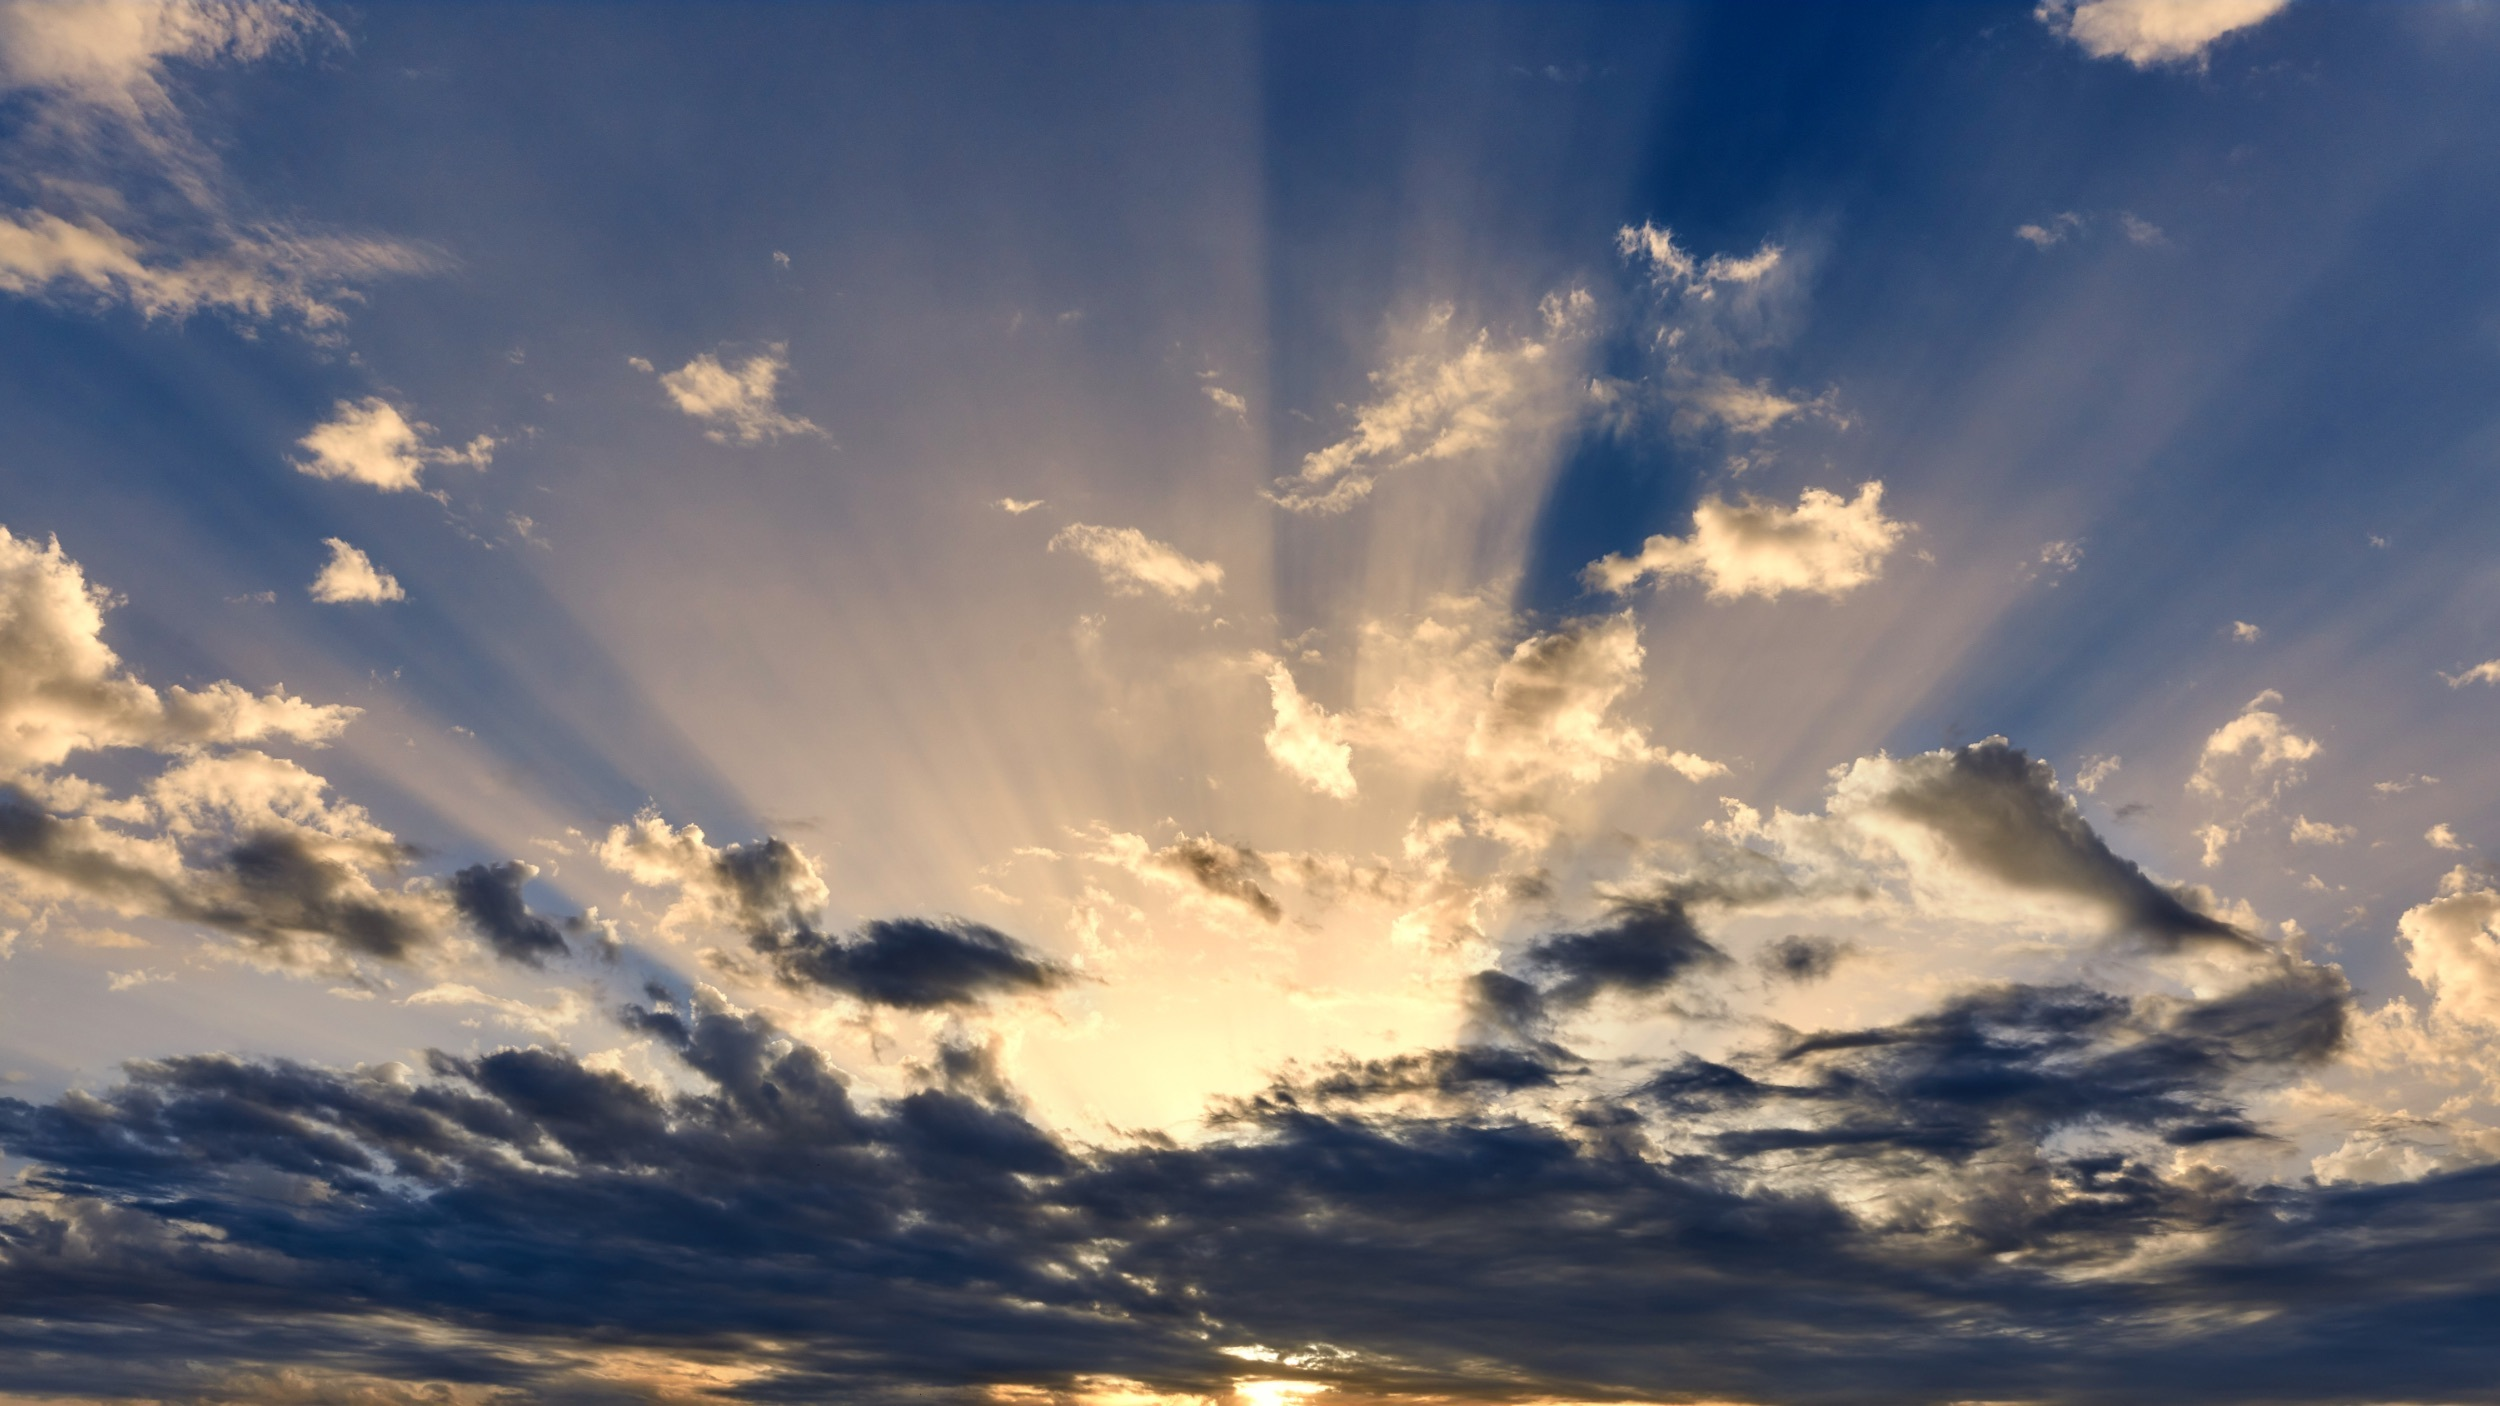 Stock image of a partly cloudy sky with visible sun rays